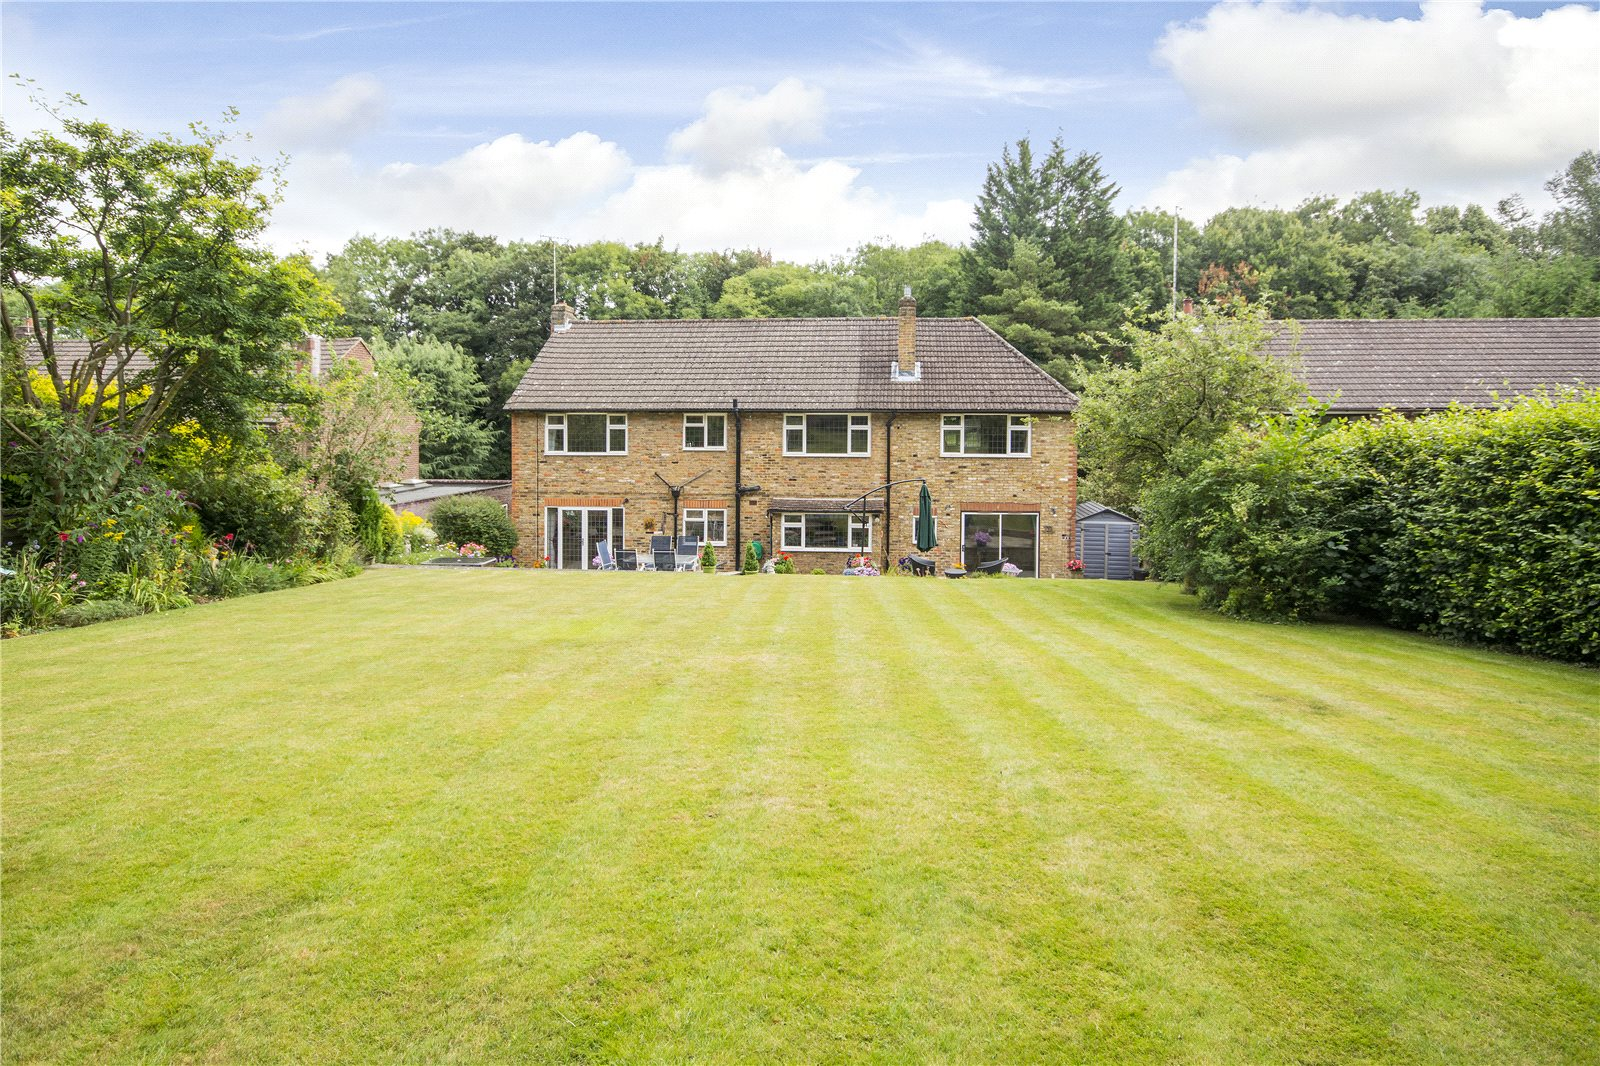 Additional photo for property listing at Claydon End, Chalfont St Peter, Gerrards Cross, Buckinghamshire, SL9 Gerrards Cross, England